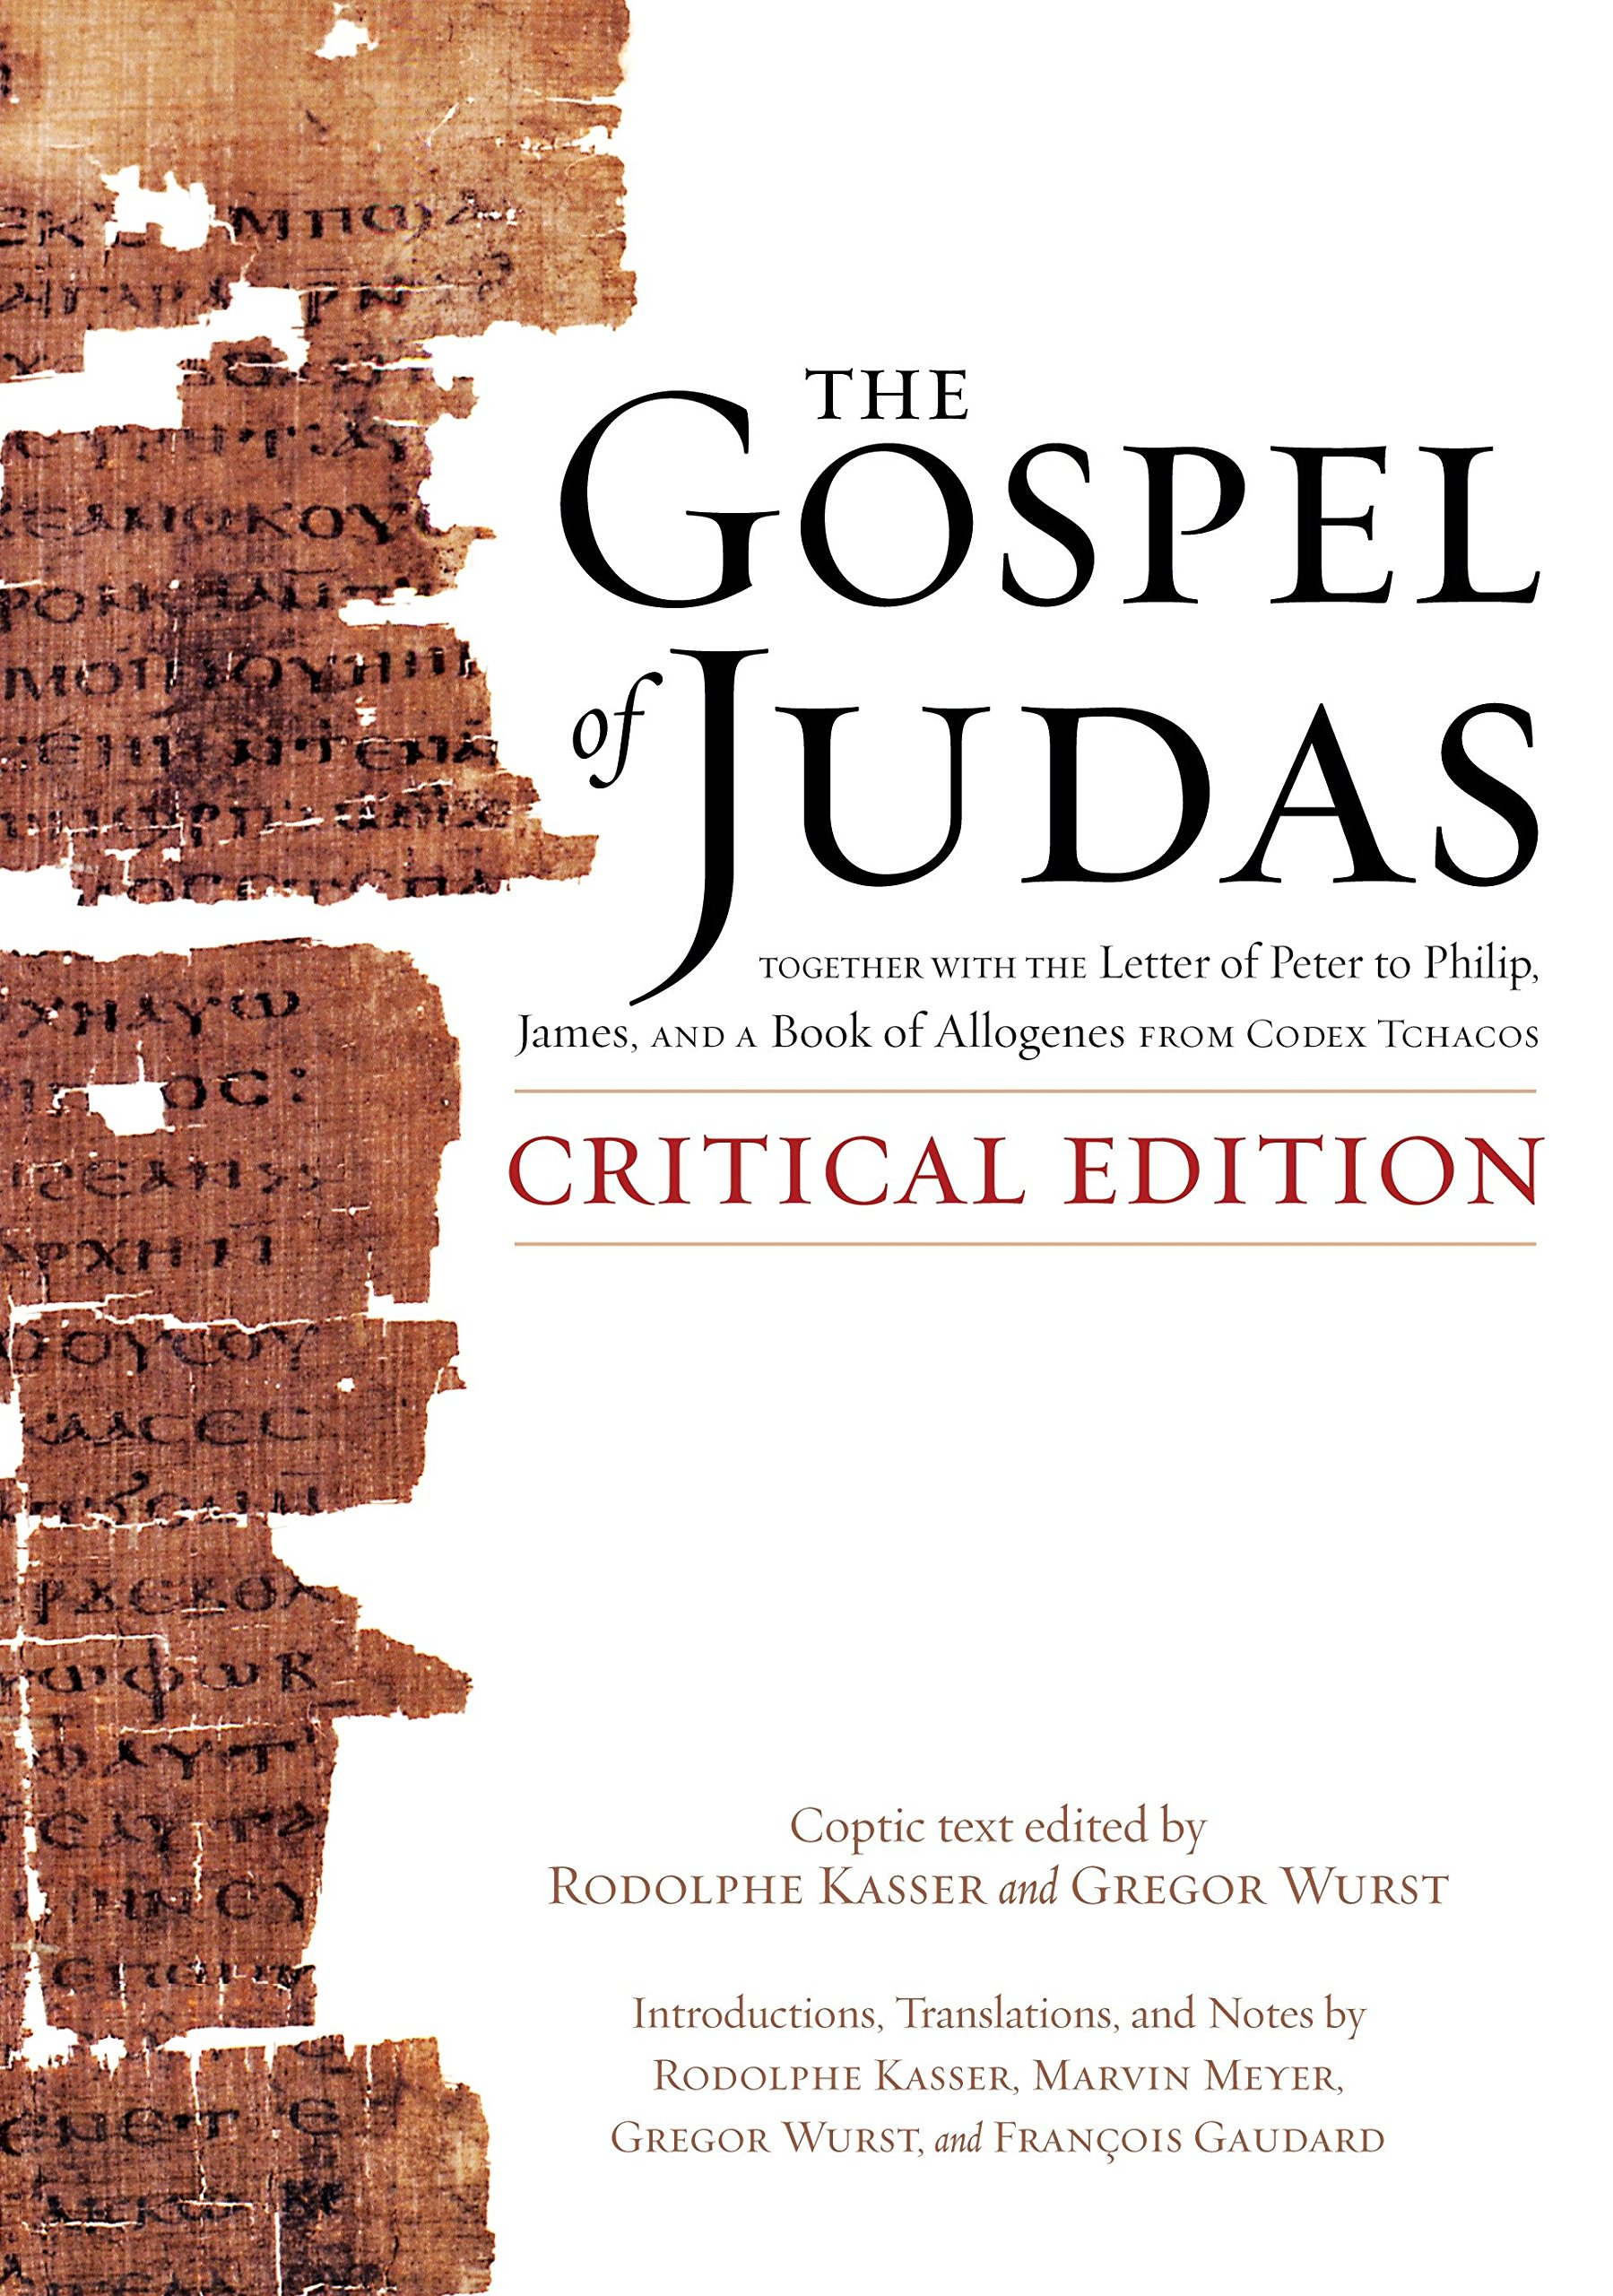 Download The Gospel of Judas, Critical Edition: Together with the Letter of Peter to Phillip, James, and a Book of Allogenes from Codex Tchacos PDF